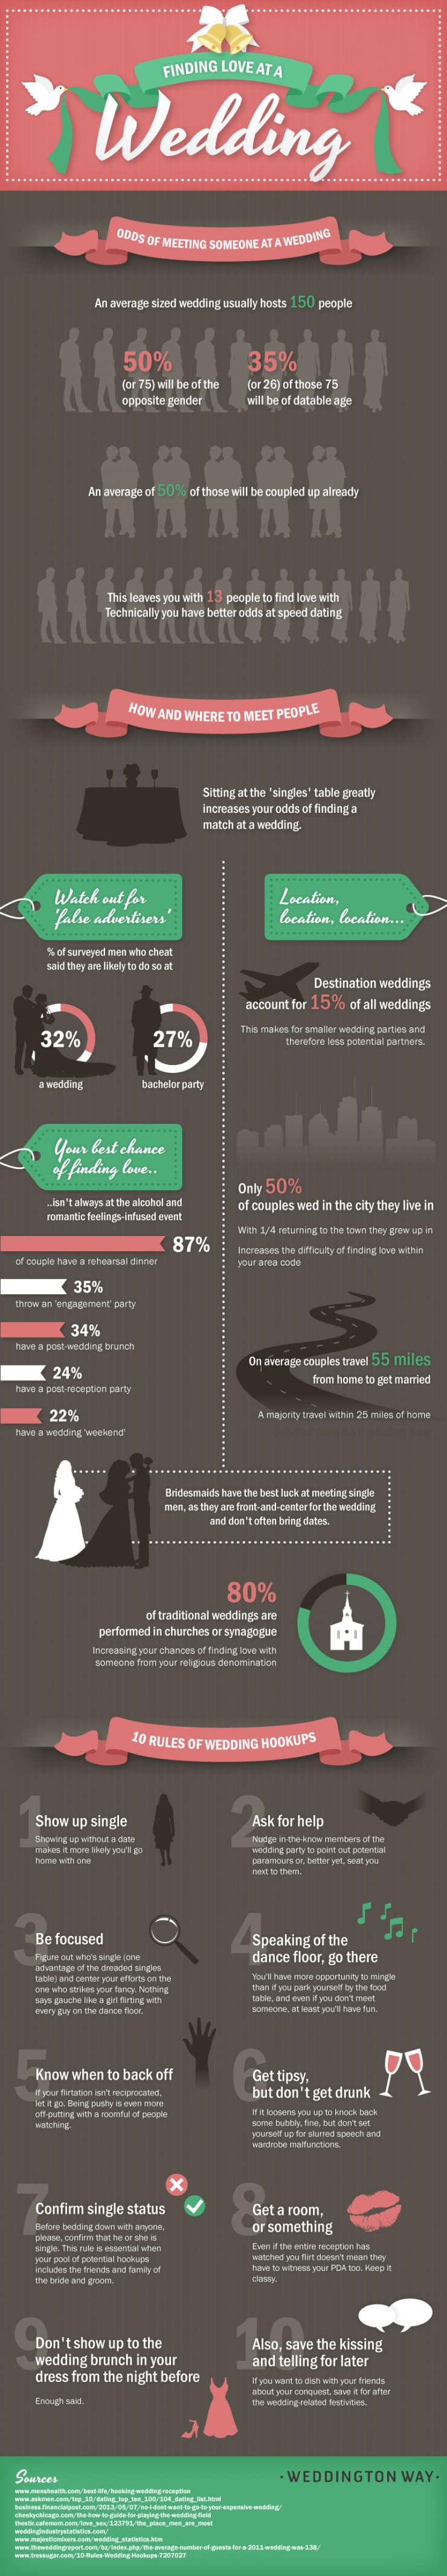 finding-love-at-a-wedding-infographic-740x4262